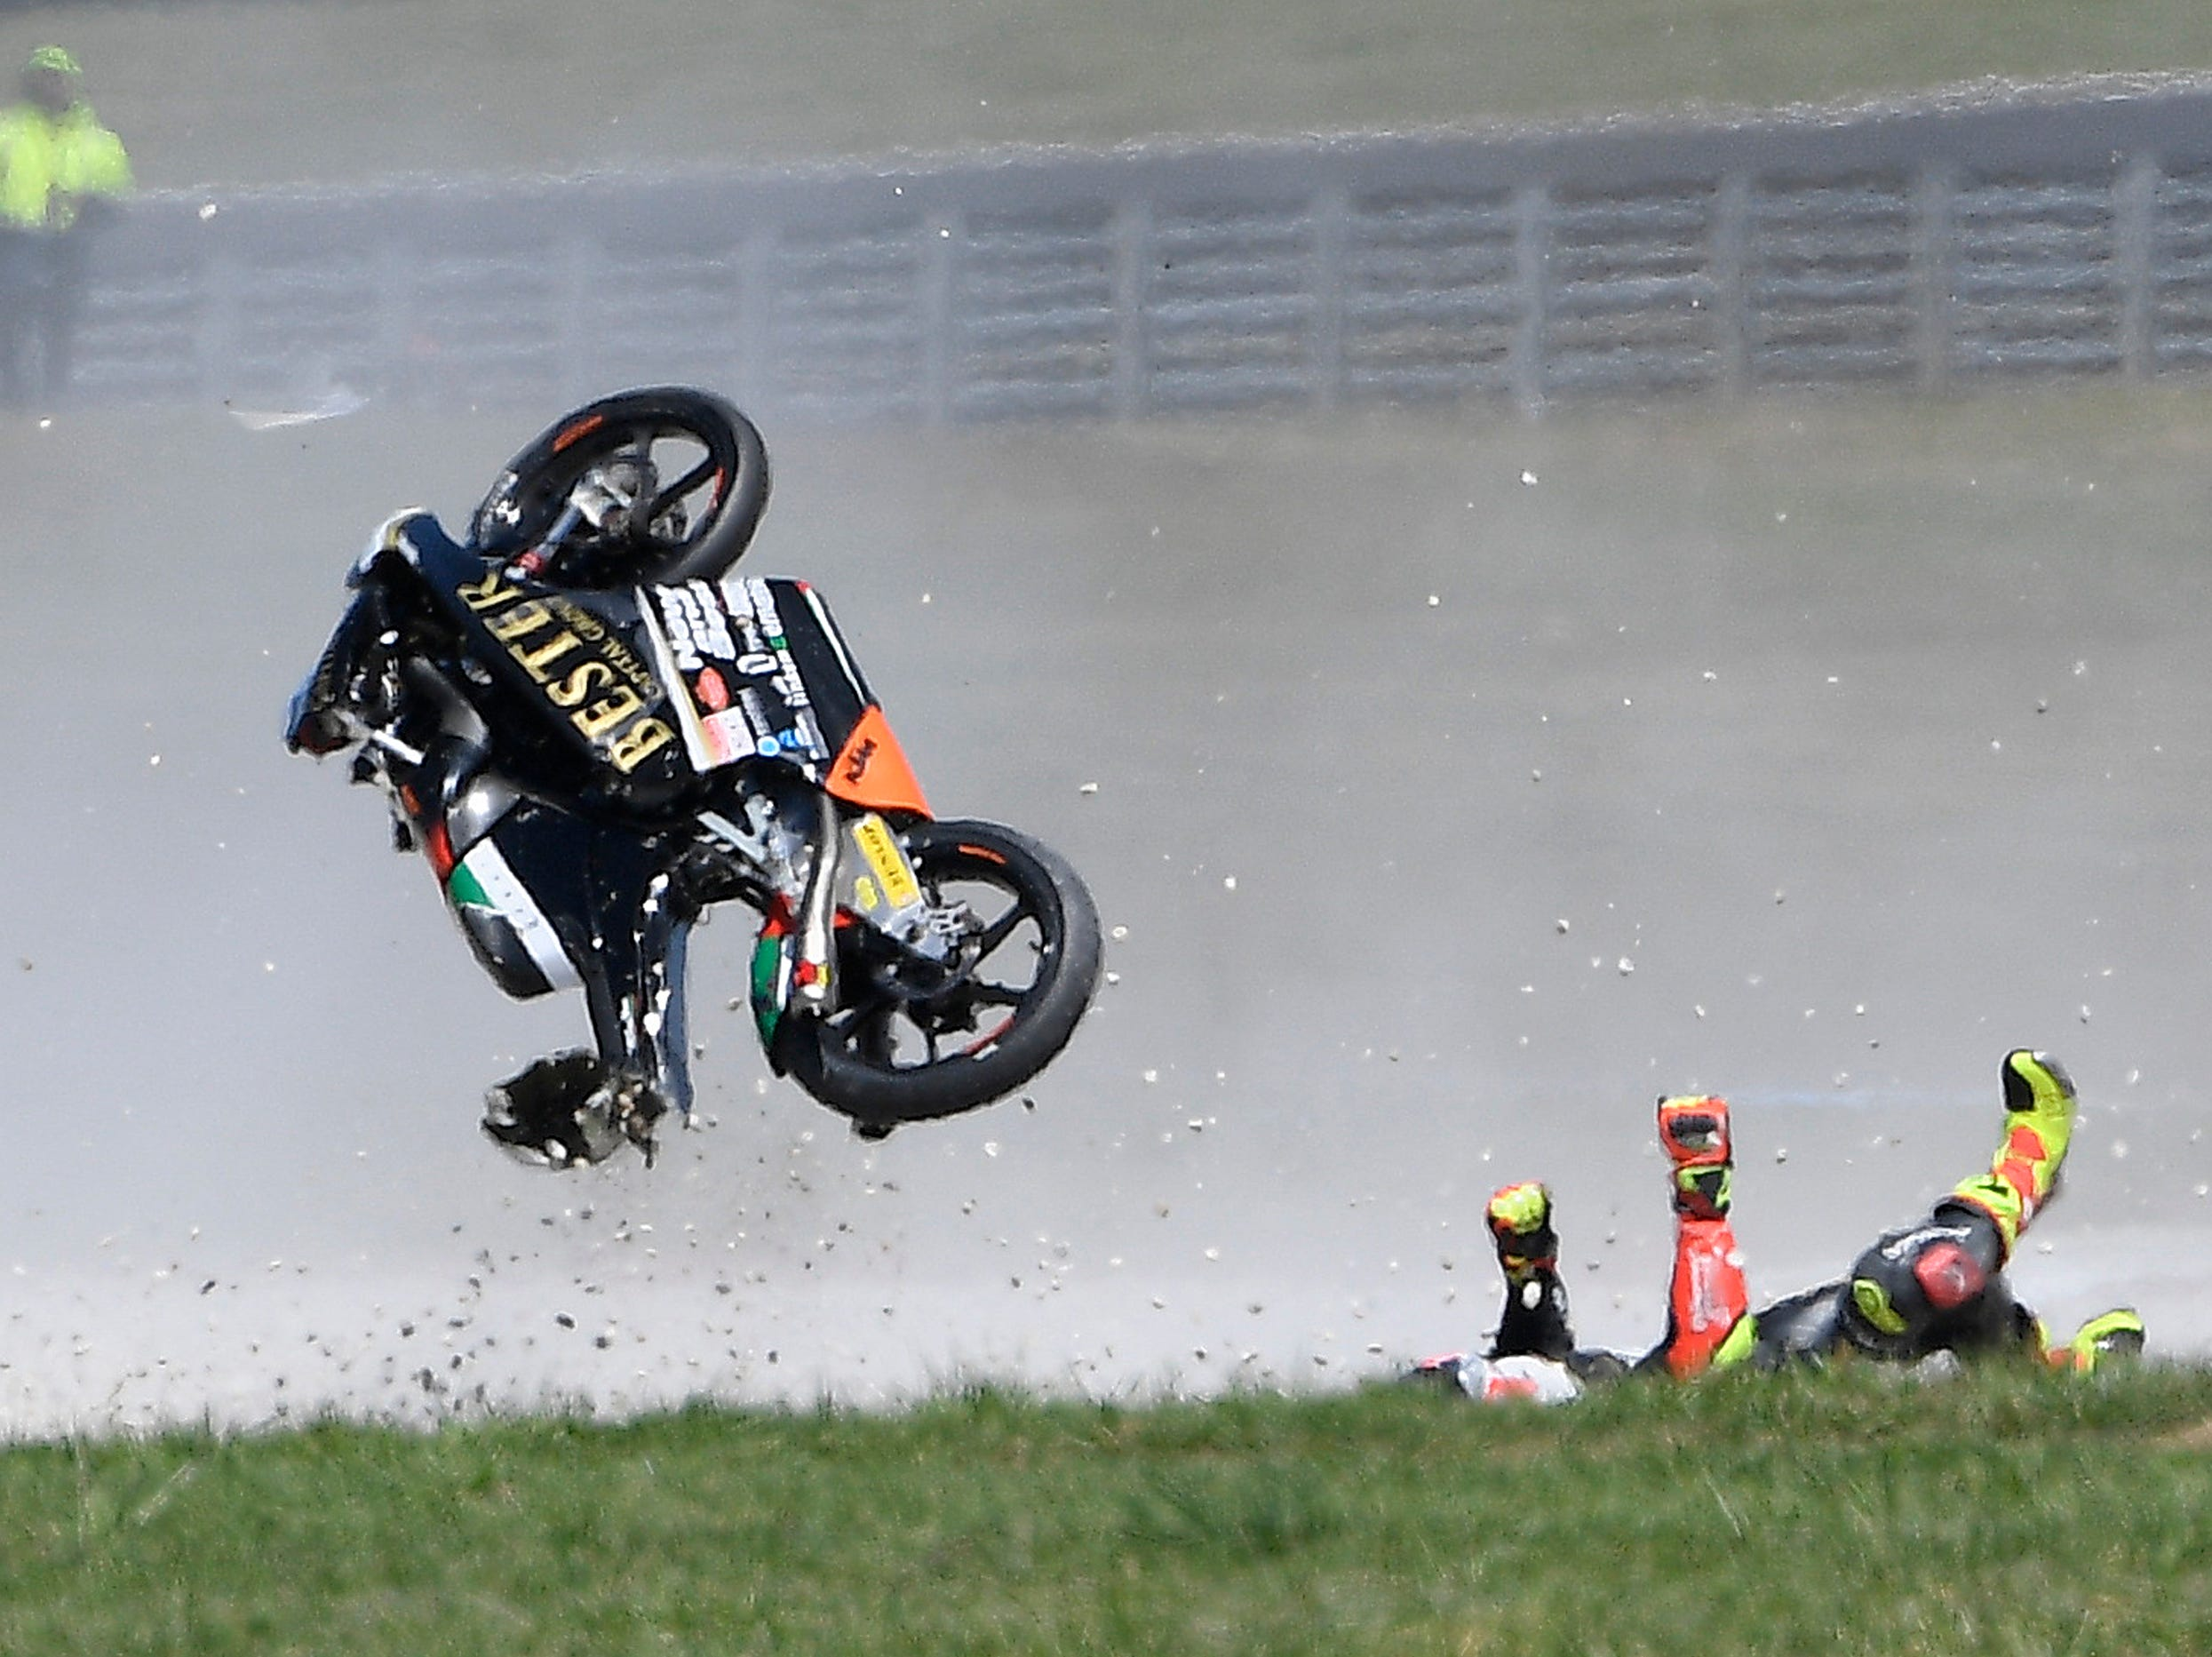 Bester Capital Dubai rider Marcos Ramirez of Spain crashes during the Moto3 race of the Australian Motorcycle Grand Prix at Phillip Island, Sunday, Oct. 28, 2018.